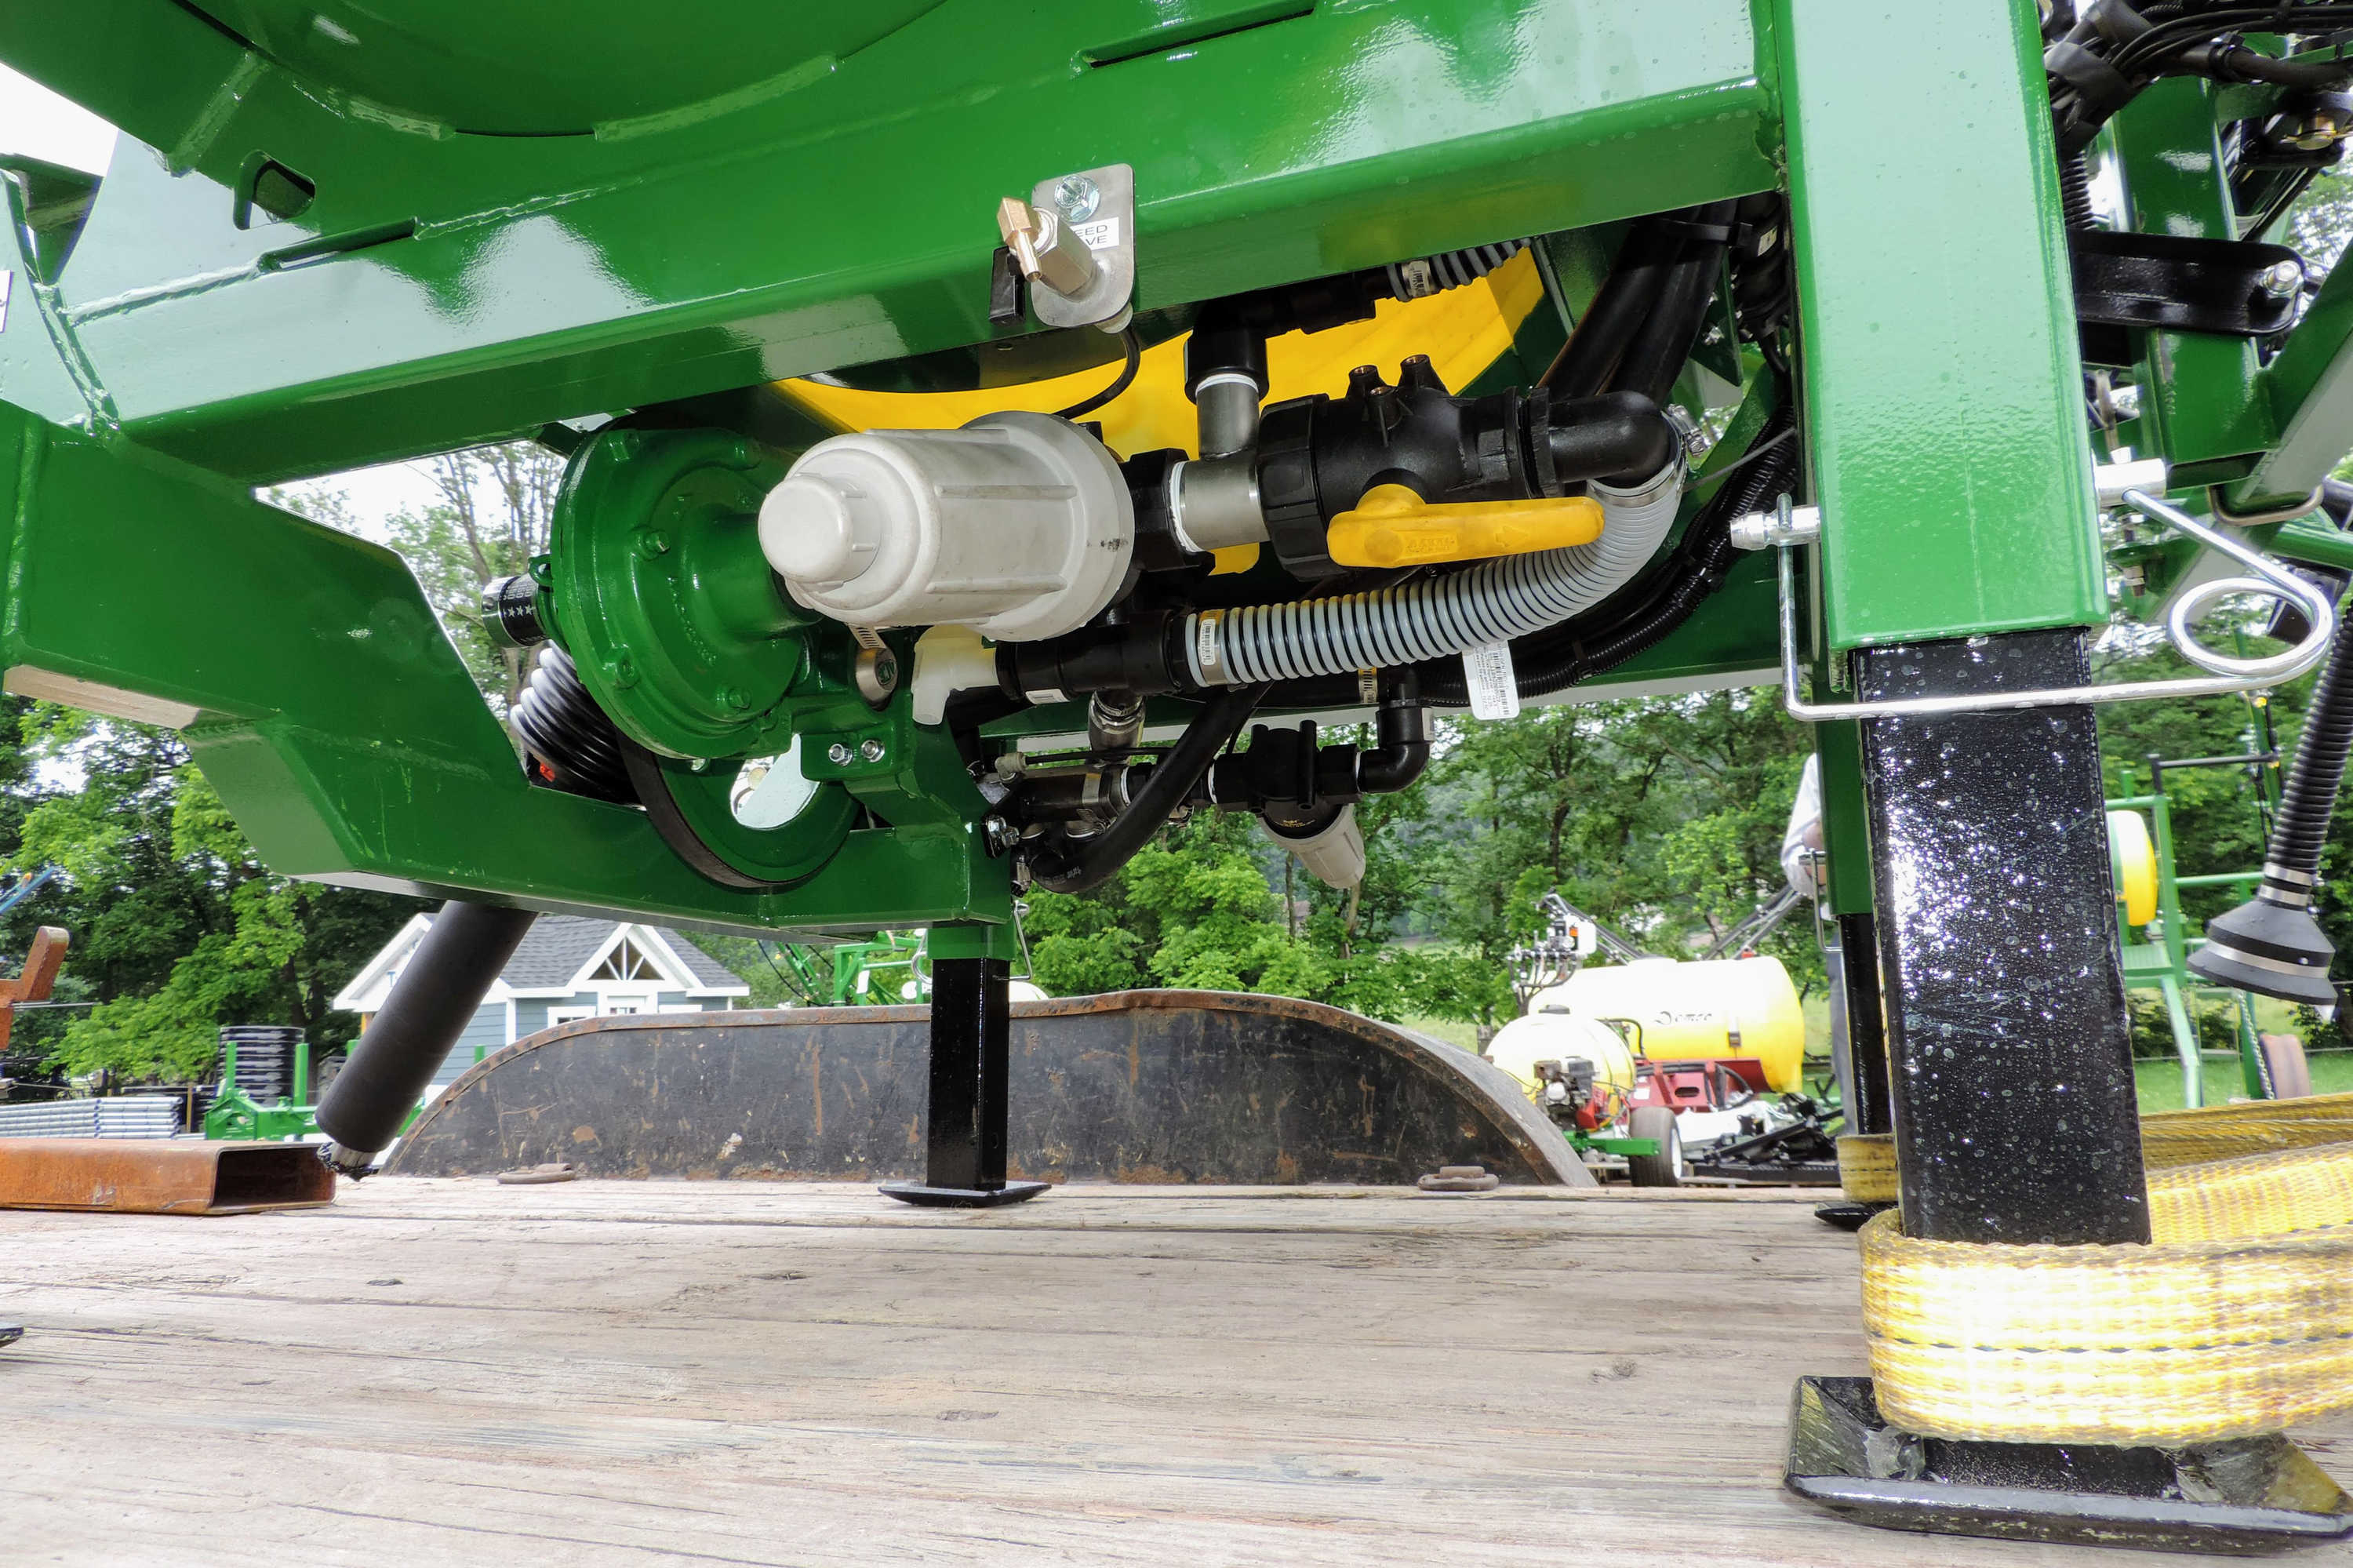 200 gallon 3-point Hitch Sprayer - filters and main shutoff valve